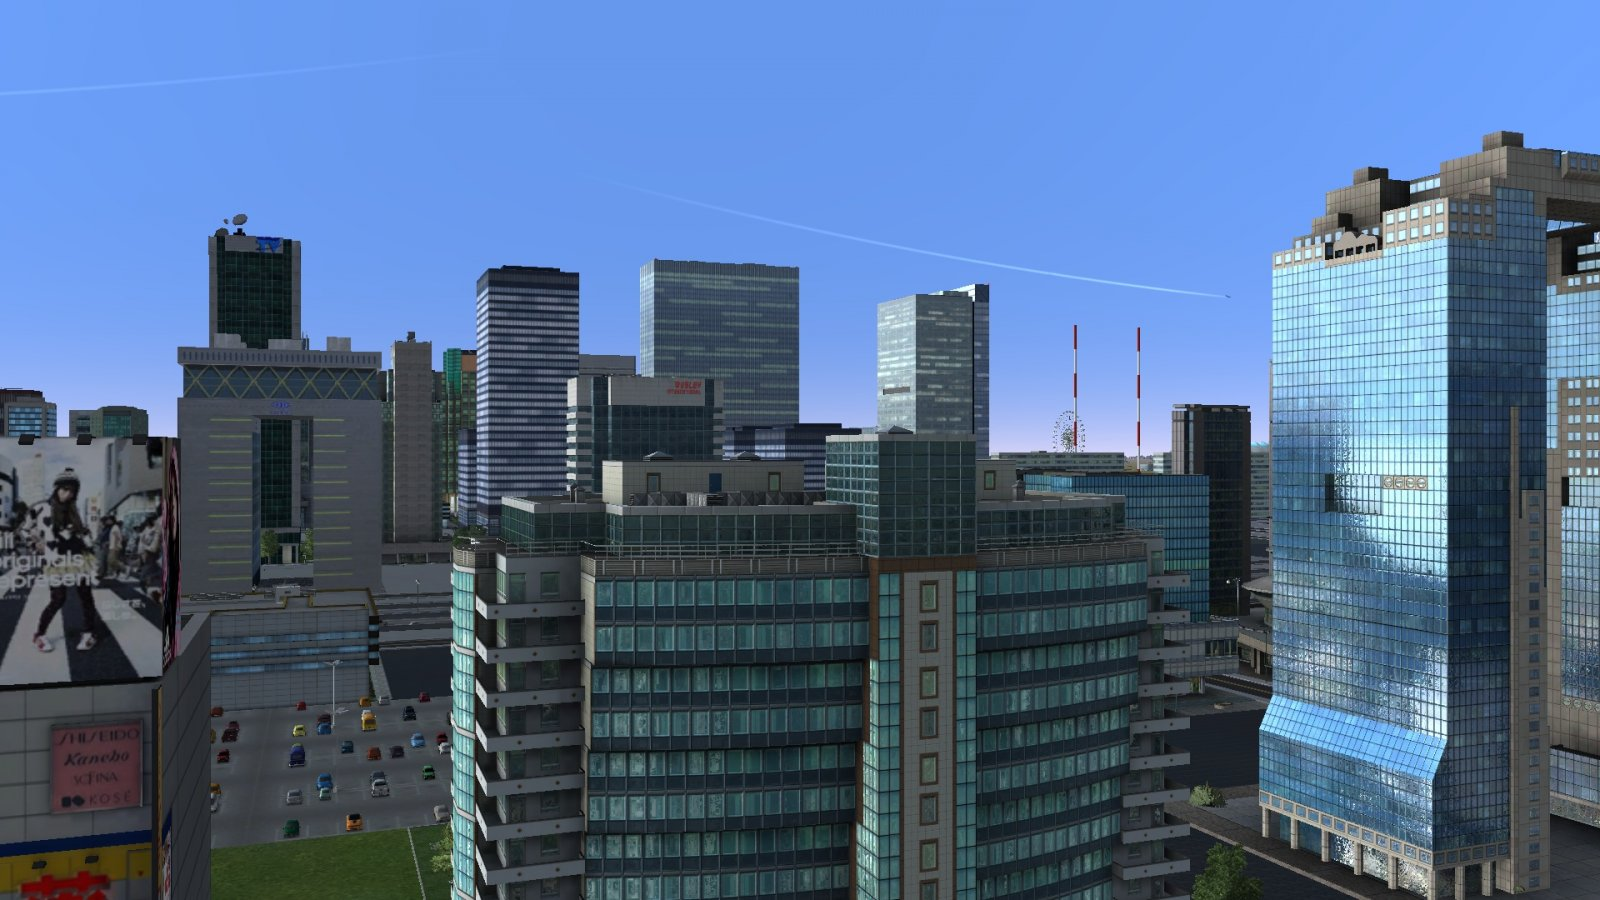 cxl_screenshot_la defense_3.jpg